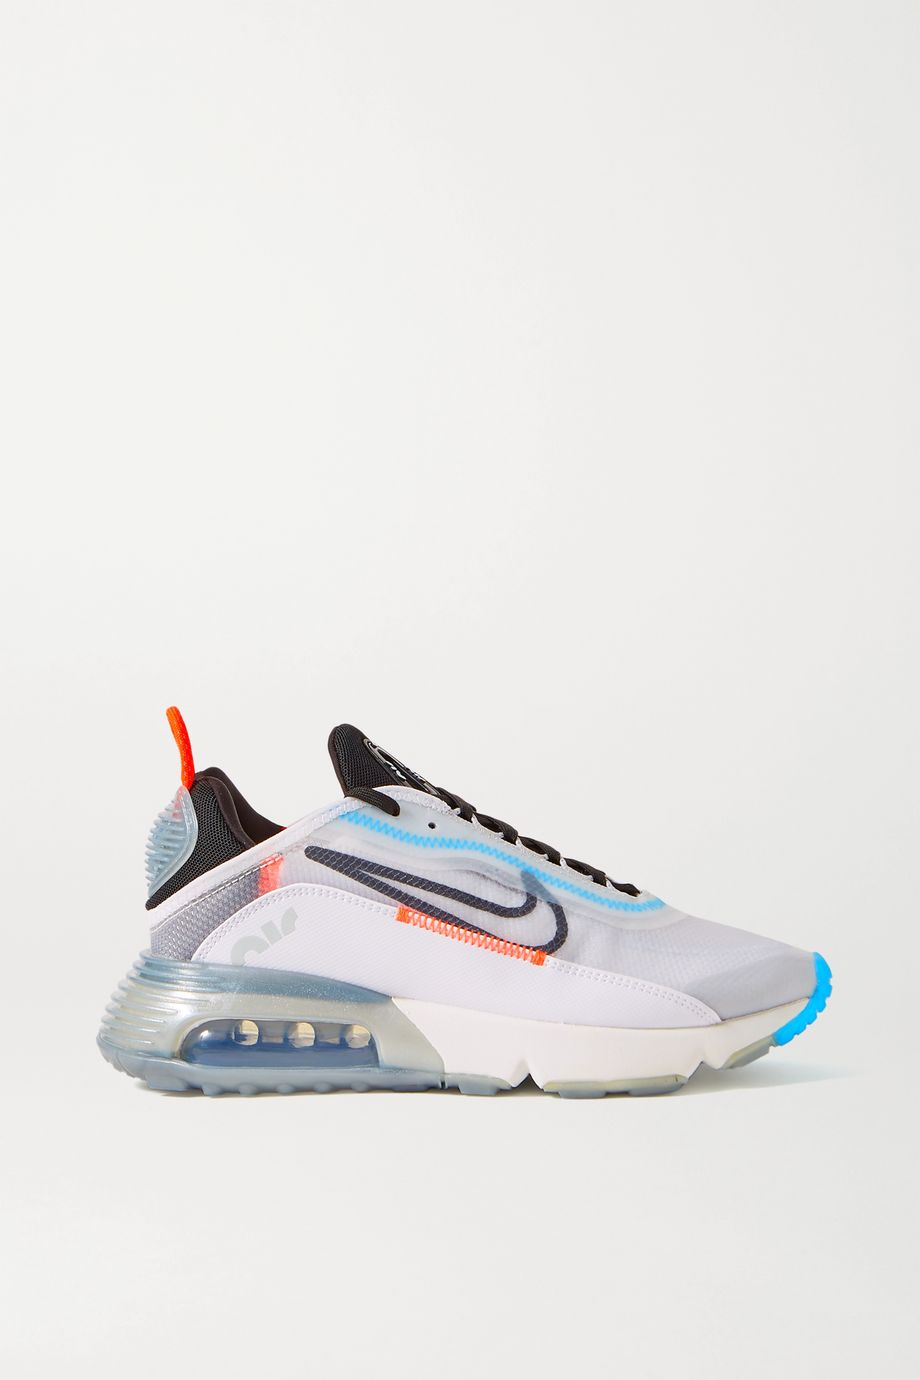 Nike Air Max 2090 ripstop, faux leather and mesh sneakers